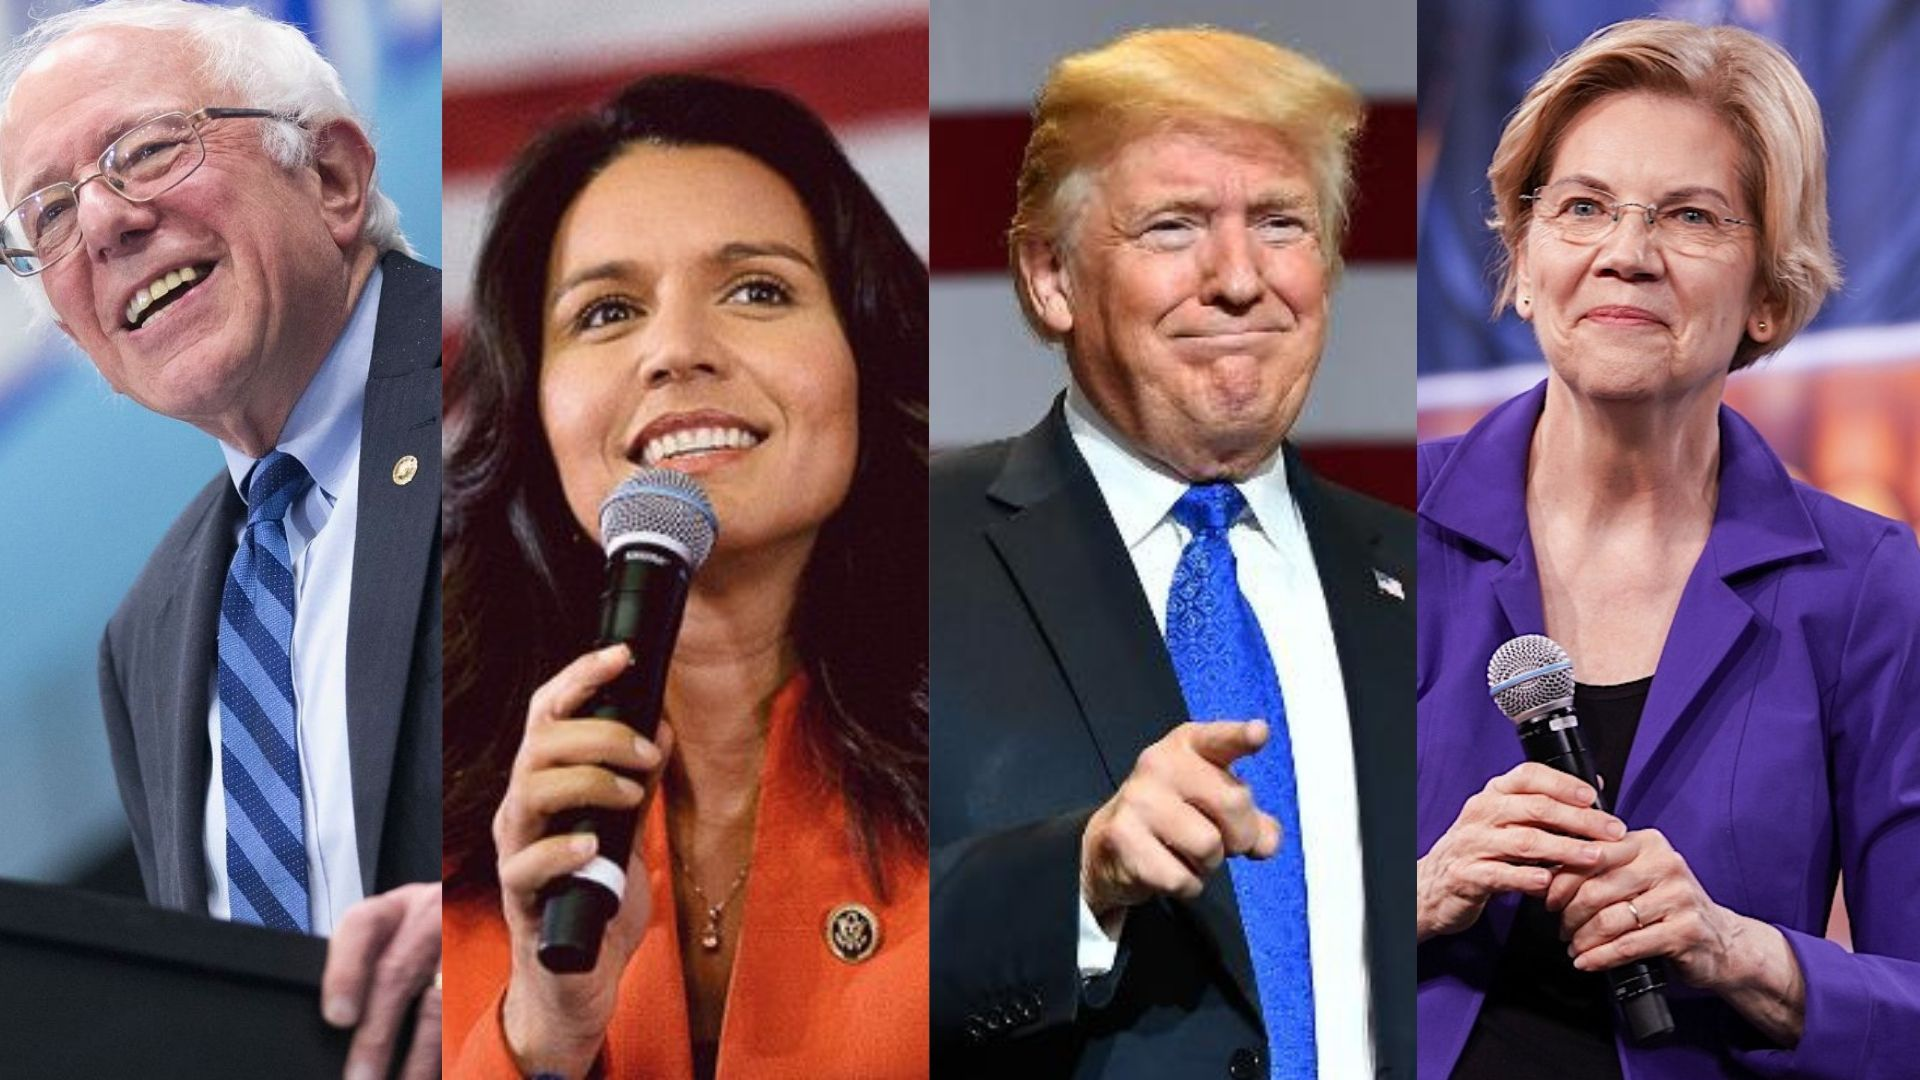 4 Important Take Aways from the IVN 2020 Presidential Survey